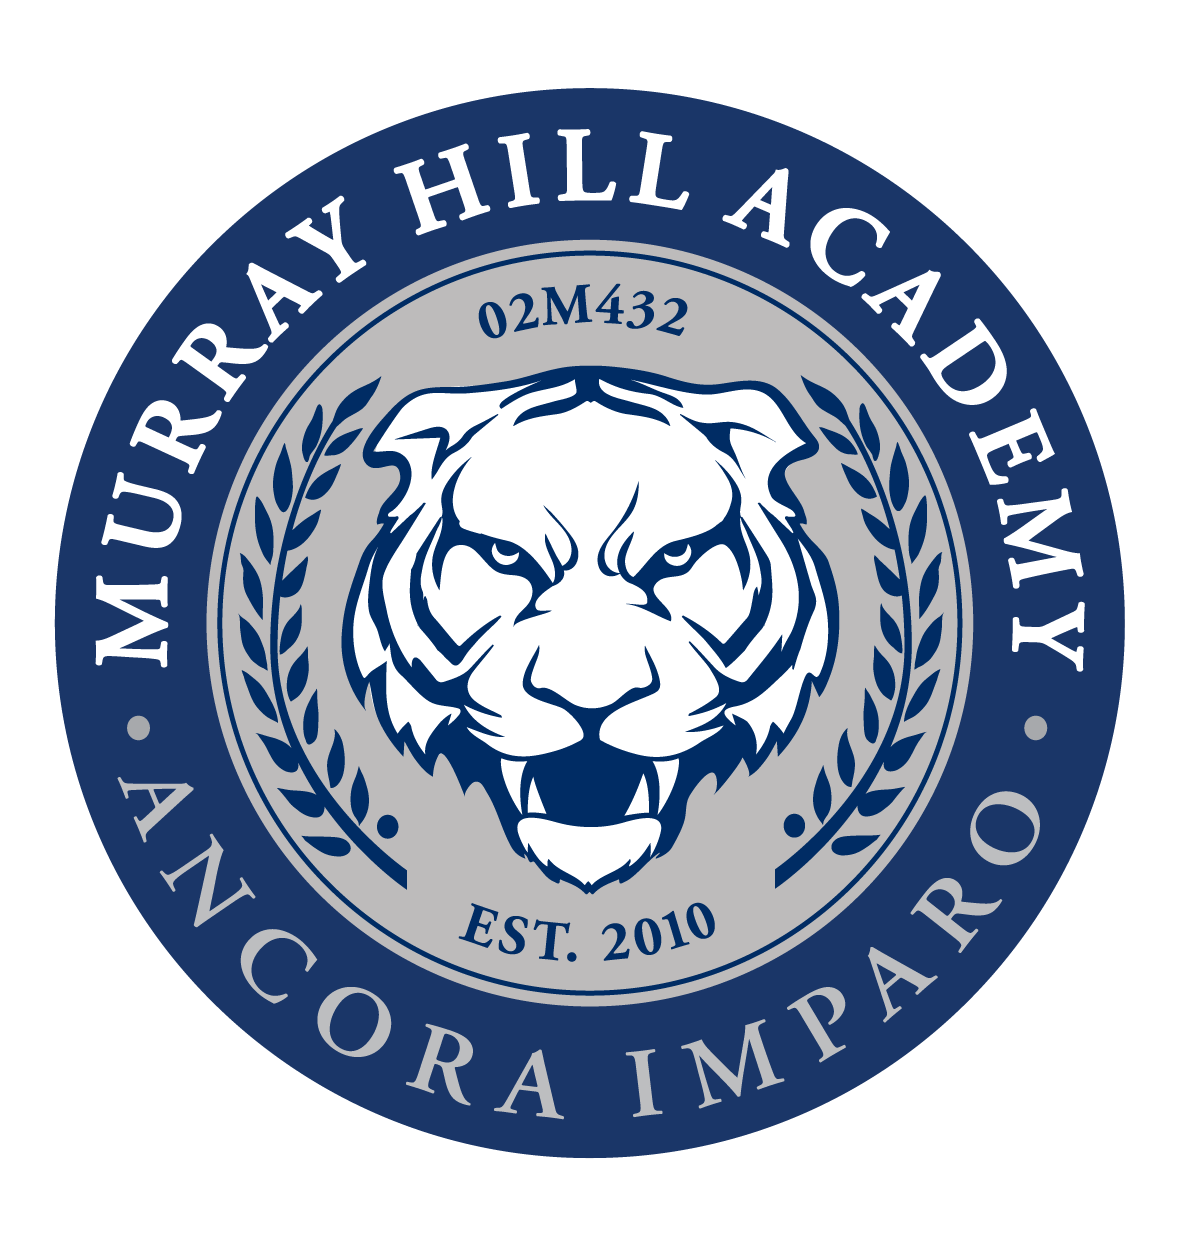 Murray Hill Academy